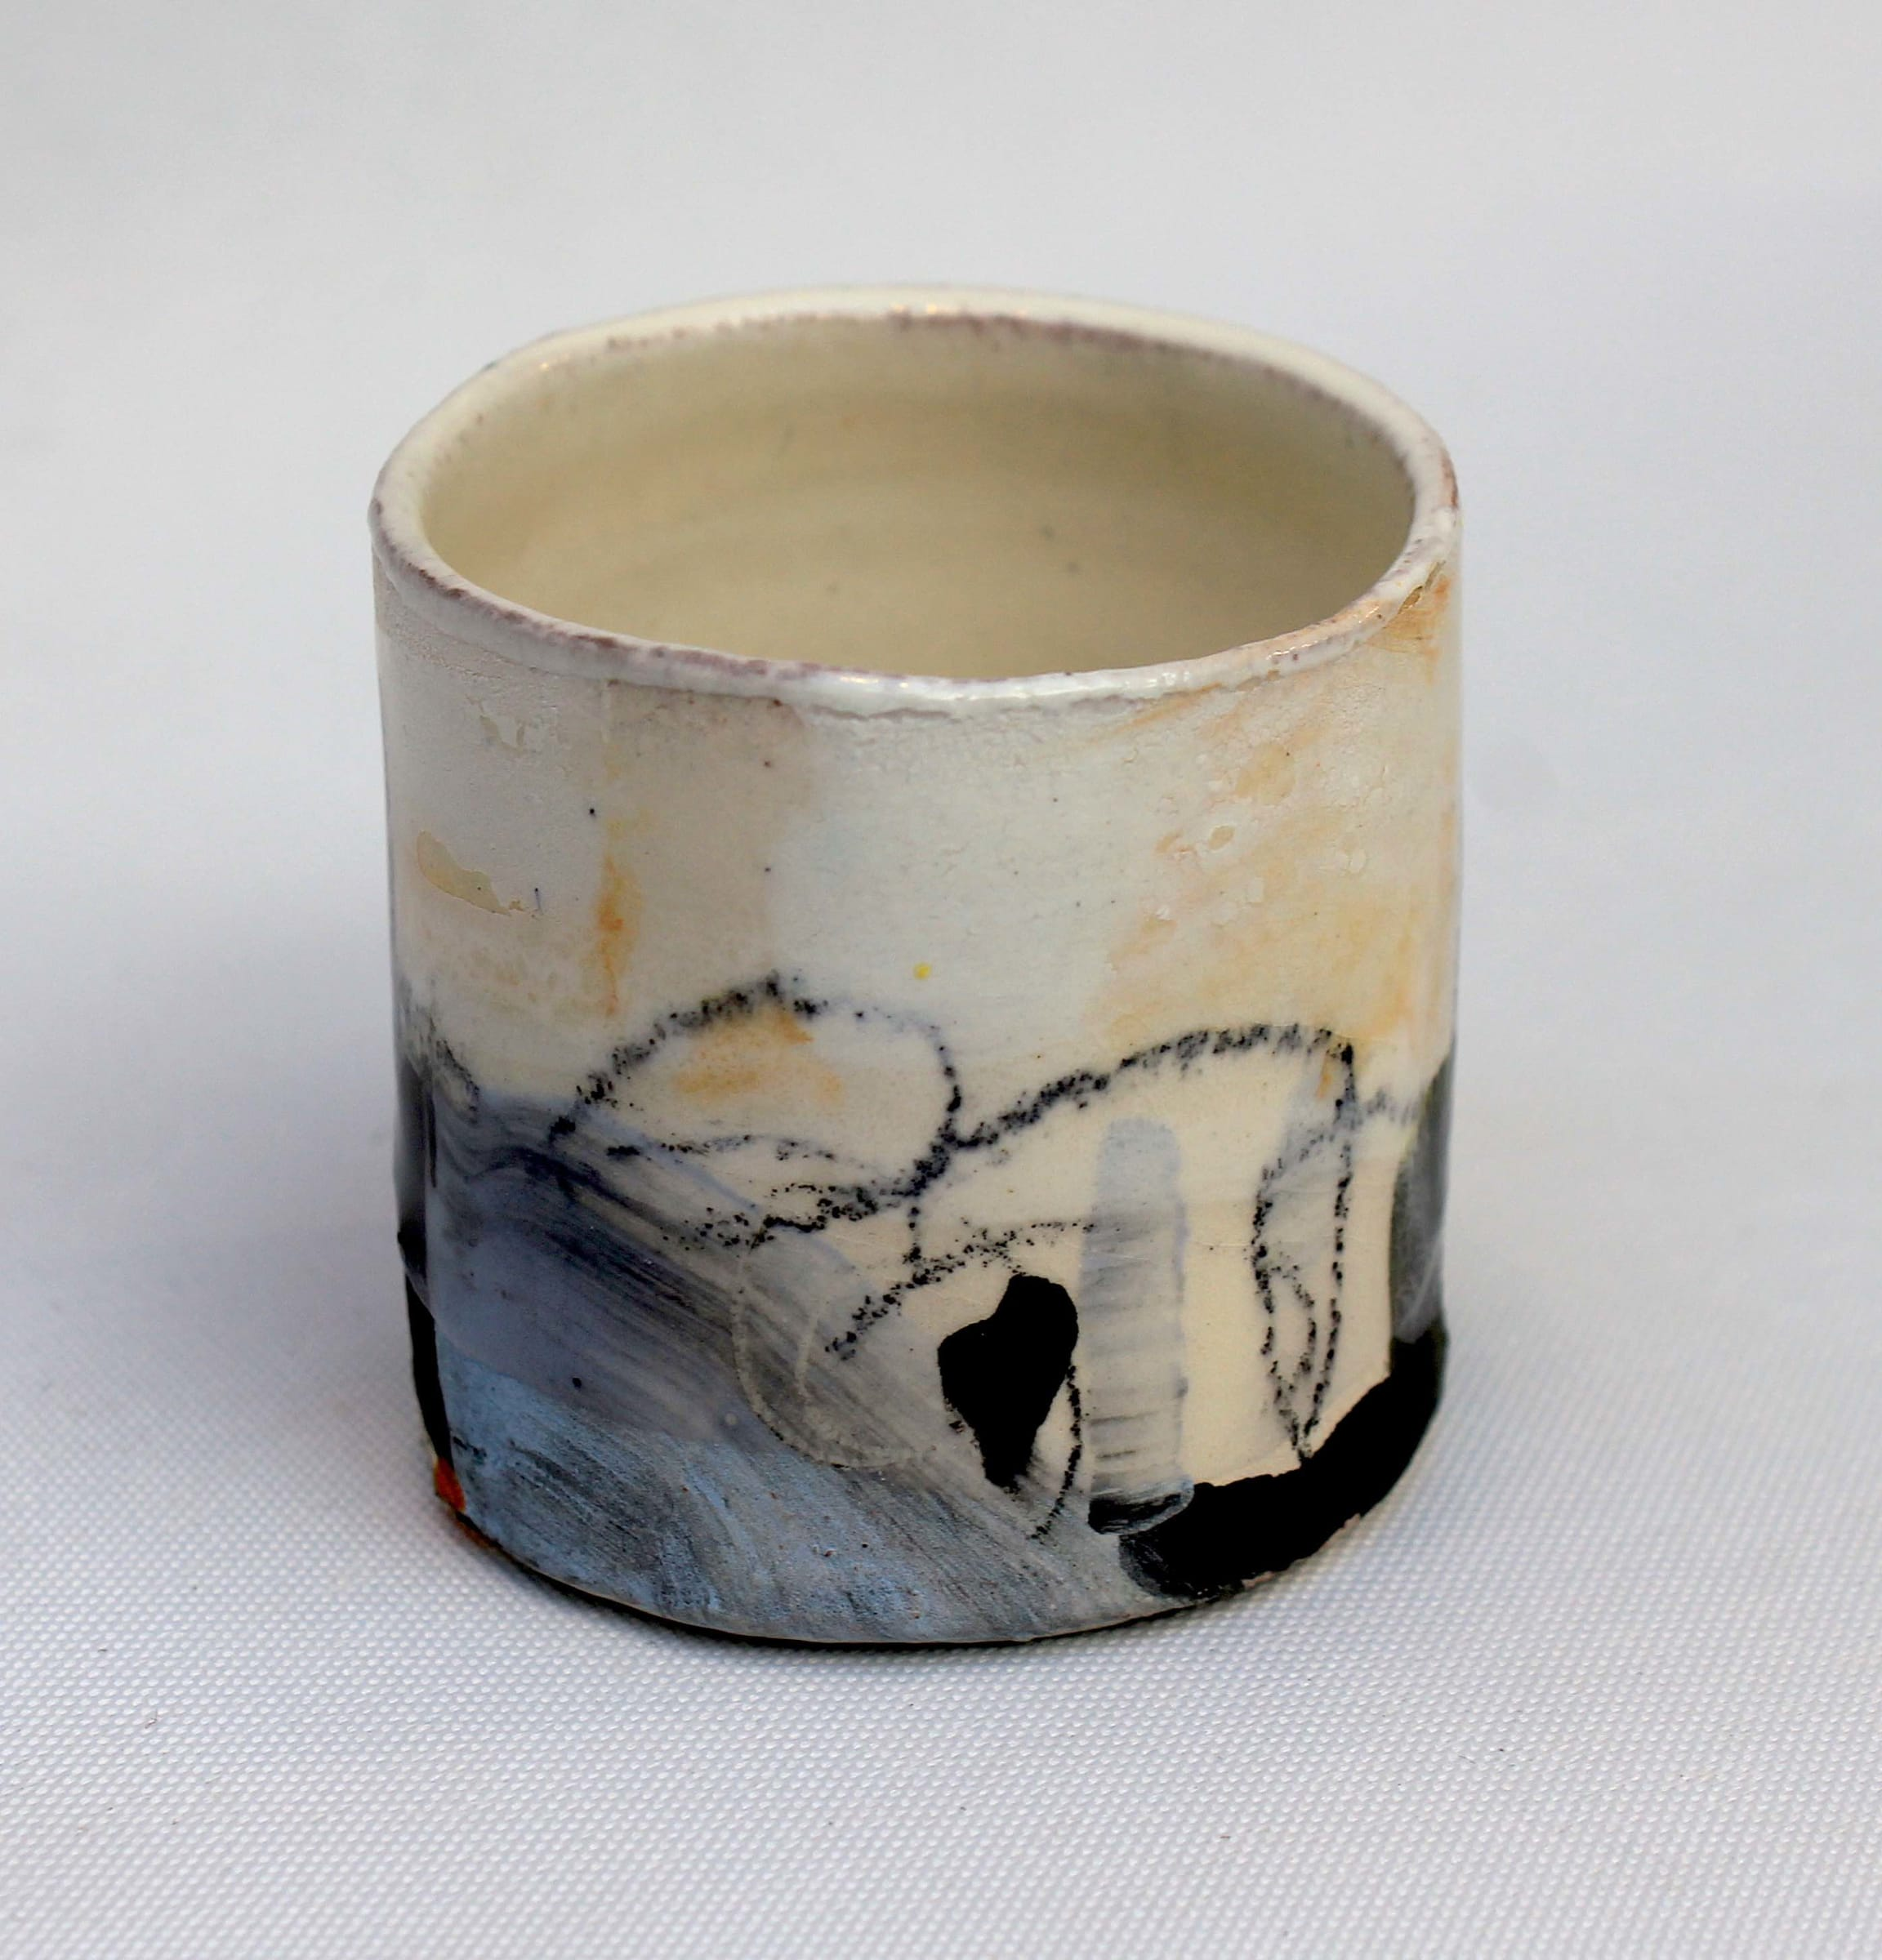 """<span class=""""link fancybox-details-link""""><a href=""""/artists/34-barry-stedman/works/4153-barry-stedman-thrown-vessel-dark-shore-series-2017/"""">View Detail Page</a></span><div class=""""artist""""><strong>Barry Stedman</strong></div> b. 1965 <div class=""""title""""><em>Thrown Vessel 'Dark Shore' Series</em>, 2017</div> <div class=""""signed_and_dated"""">signed by artist</div> <div class=""""medium"""">thrown and altered earthenware, decorated with slips</div> <div class=""""dimensions"""">5 x 5.5 cm<br /> 2 x 2 1/8 inches</div>"""